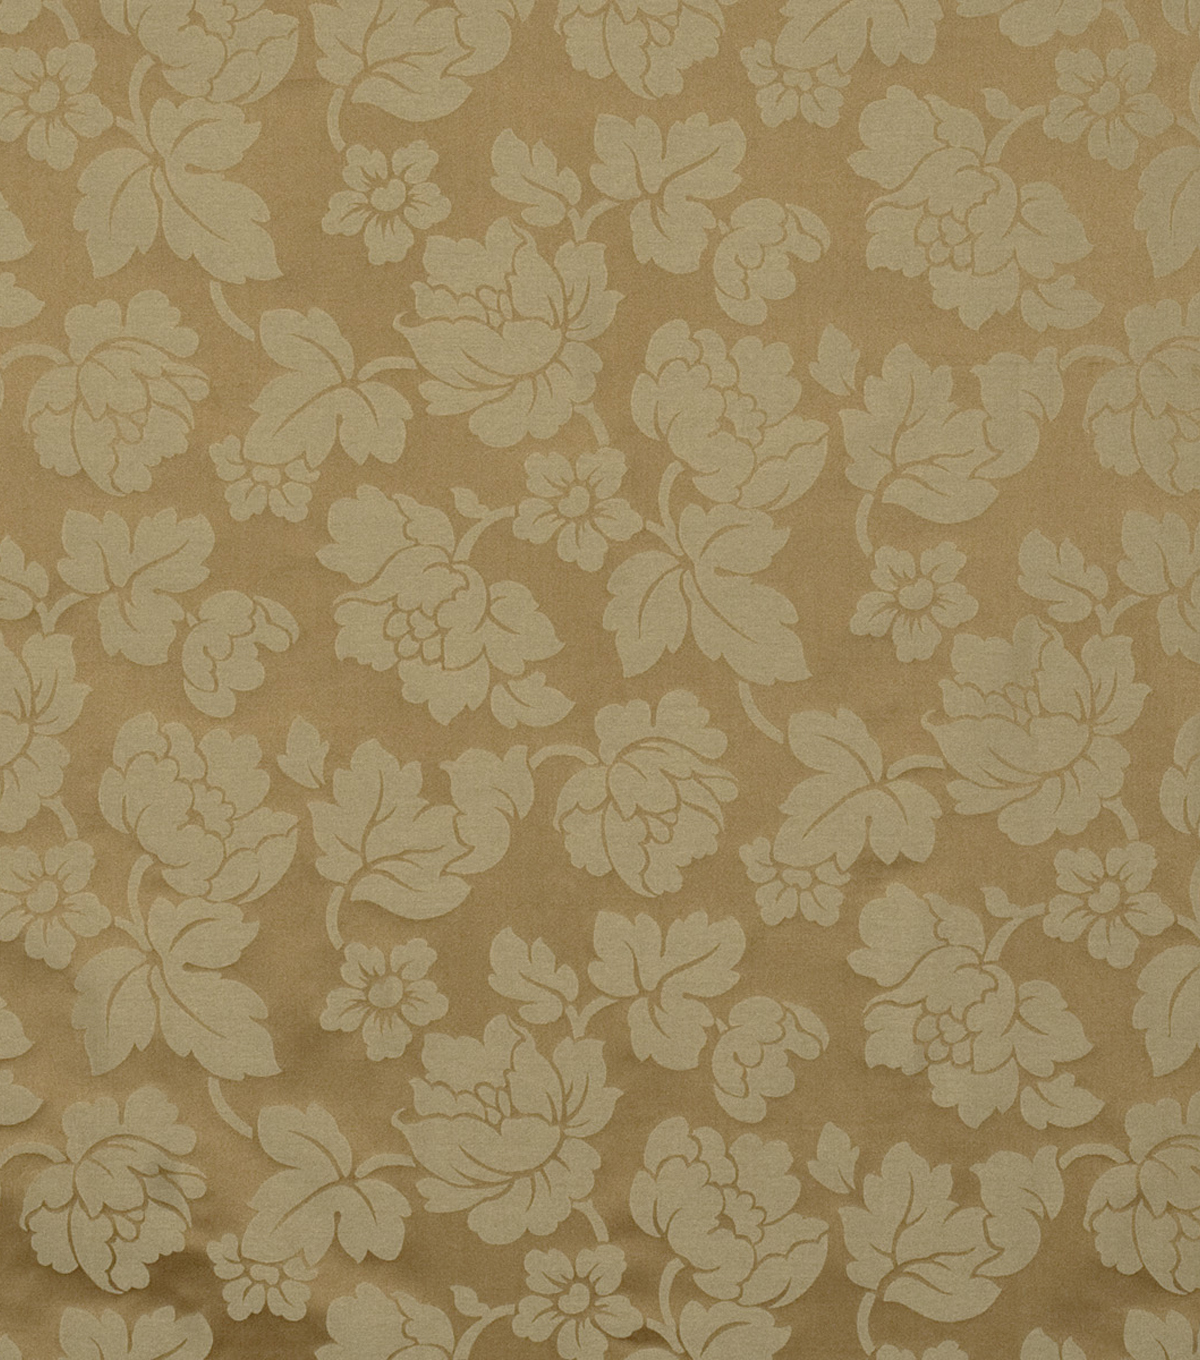 Home Decor 8\u0022x8\u0022 Fabric Swatch-Jaclyn Smith Robin-Caramel